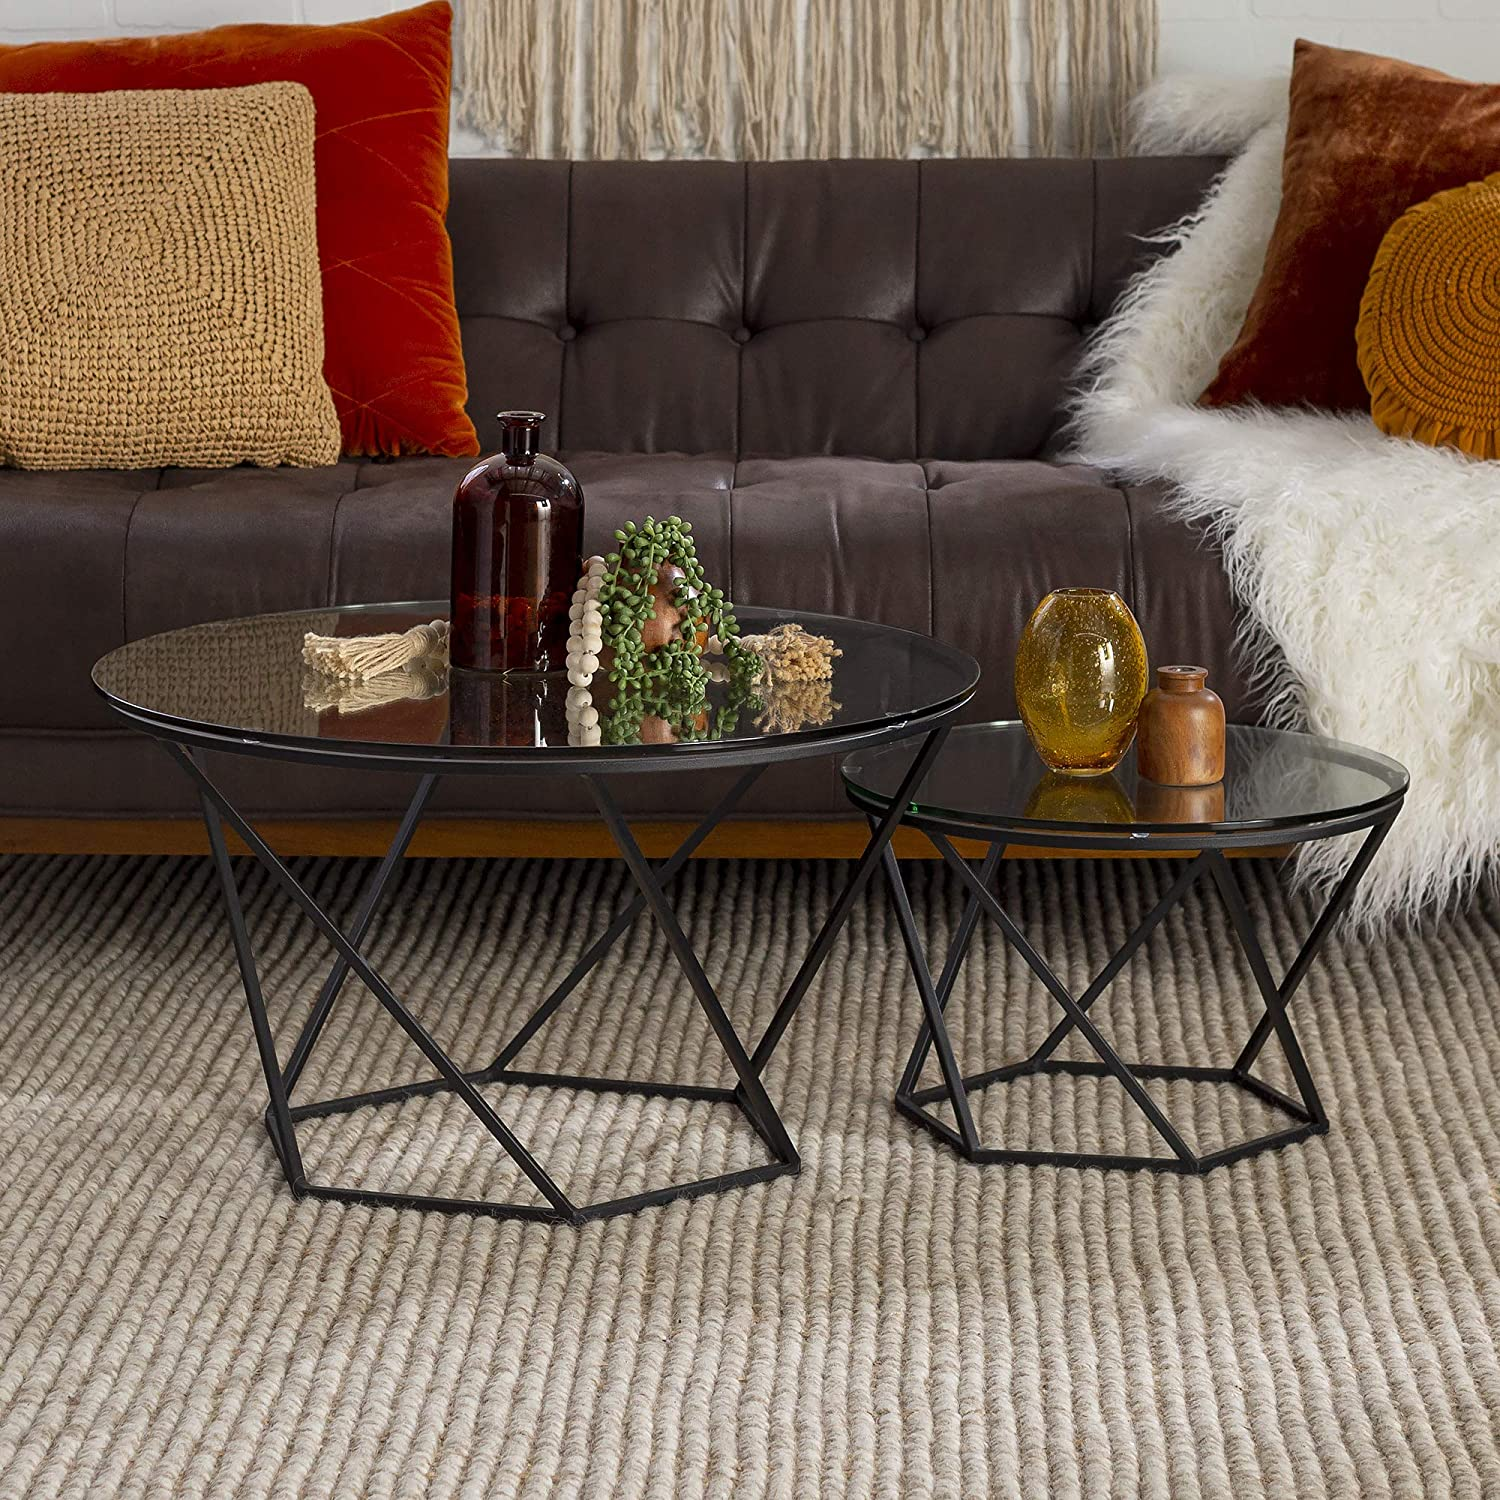 Walker Edison Furniture Modern Round Nesting Coffee Accent Table Living Room, Black